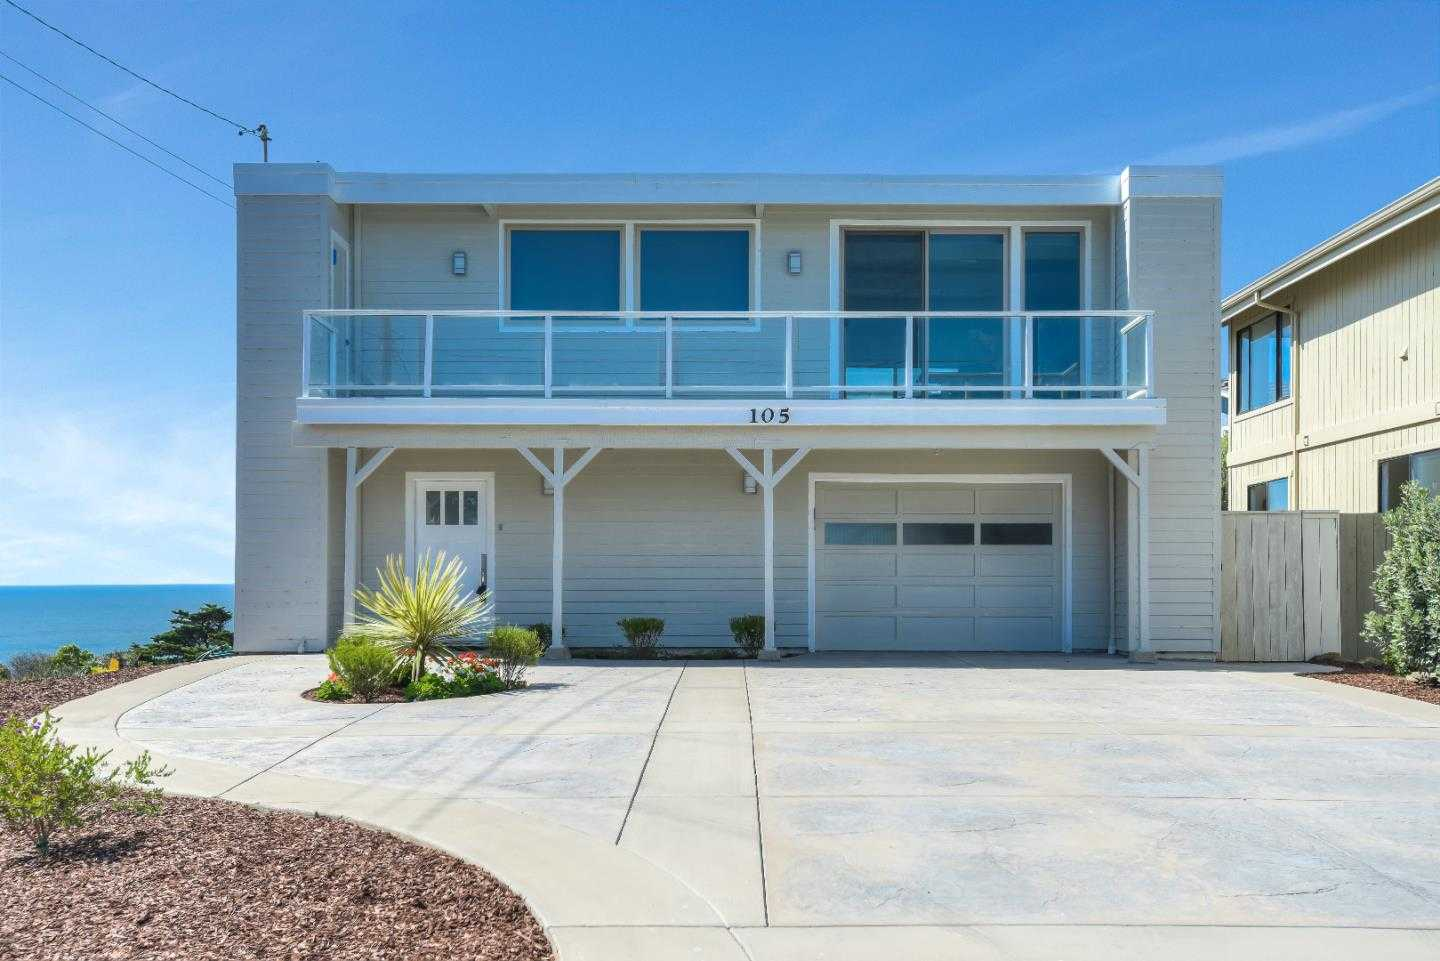 $1,749,000 - 3Br/2Ba -  for Sale in Moss Beach